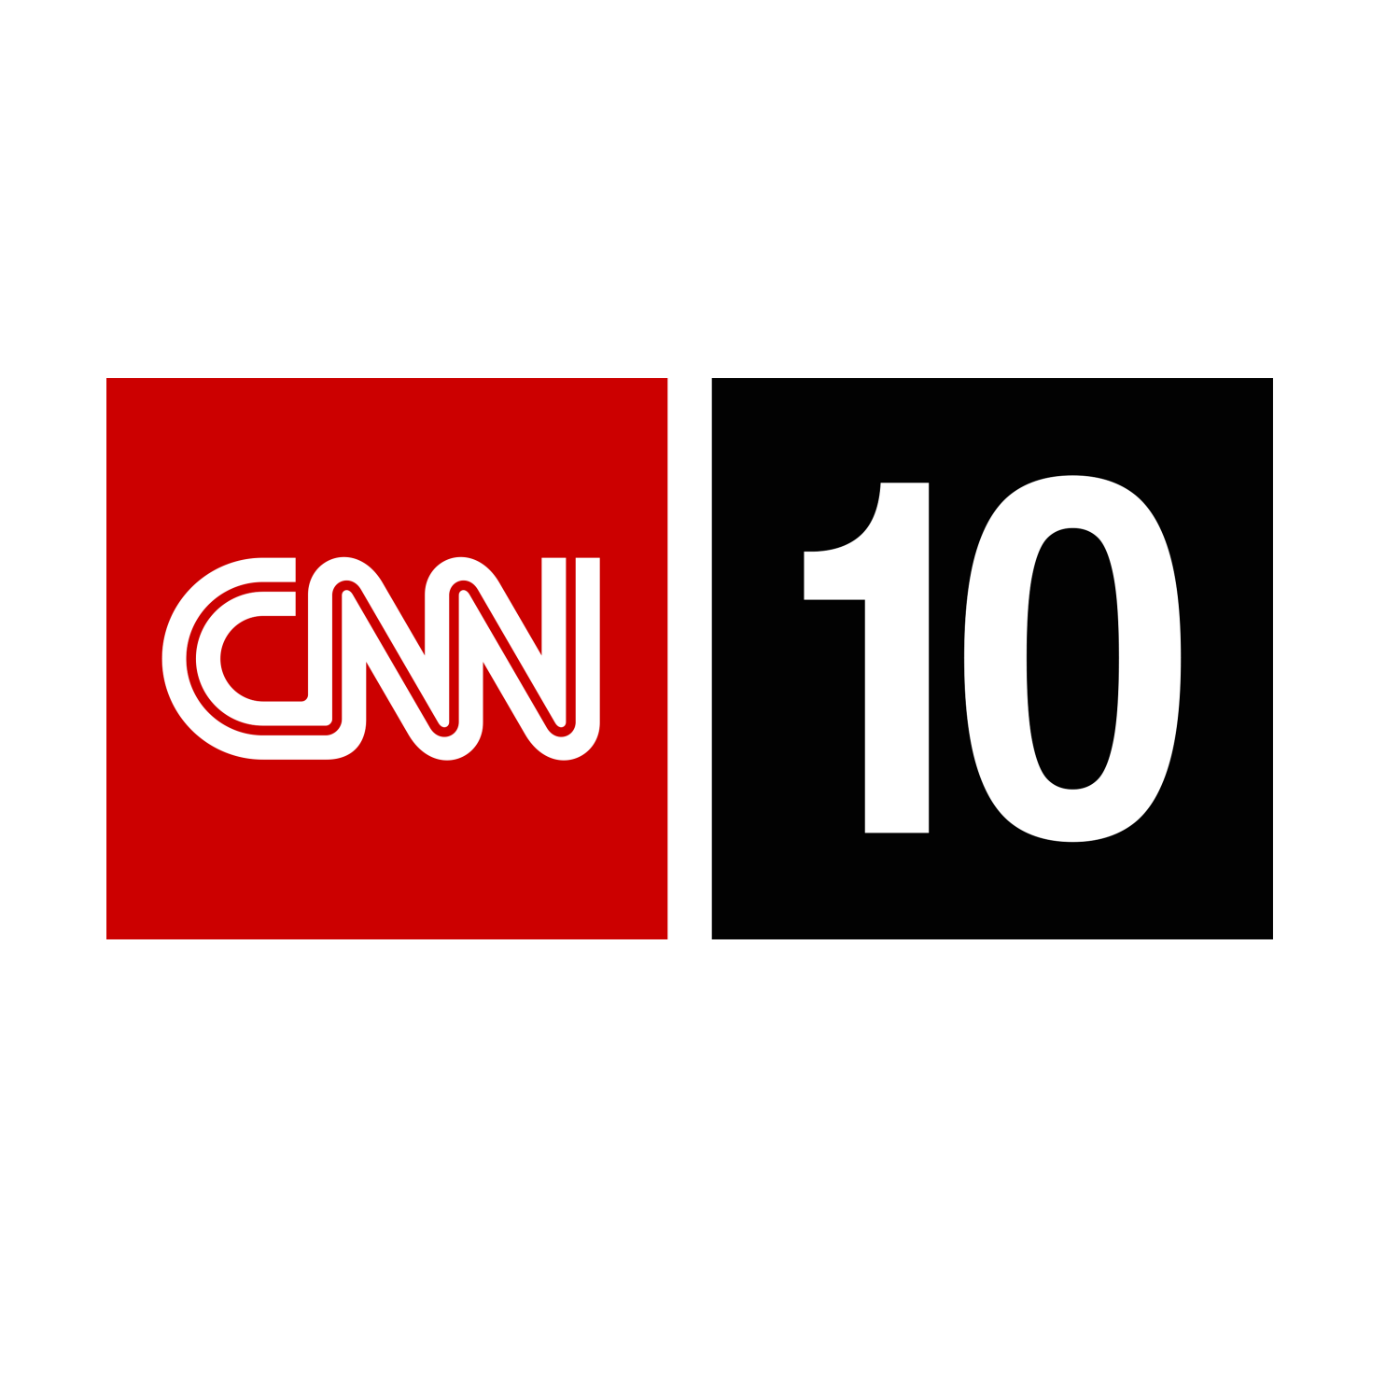 CNN Student News - January 10, 2013